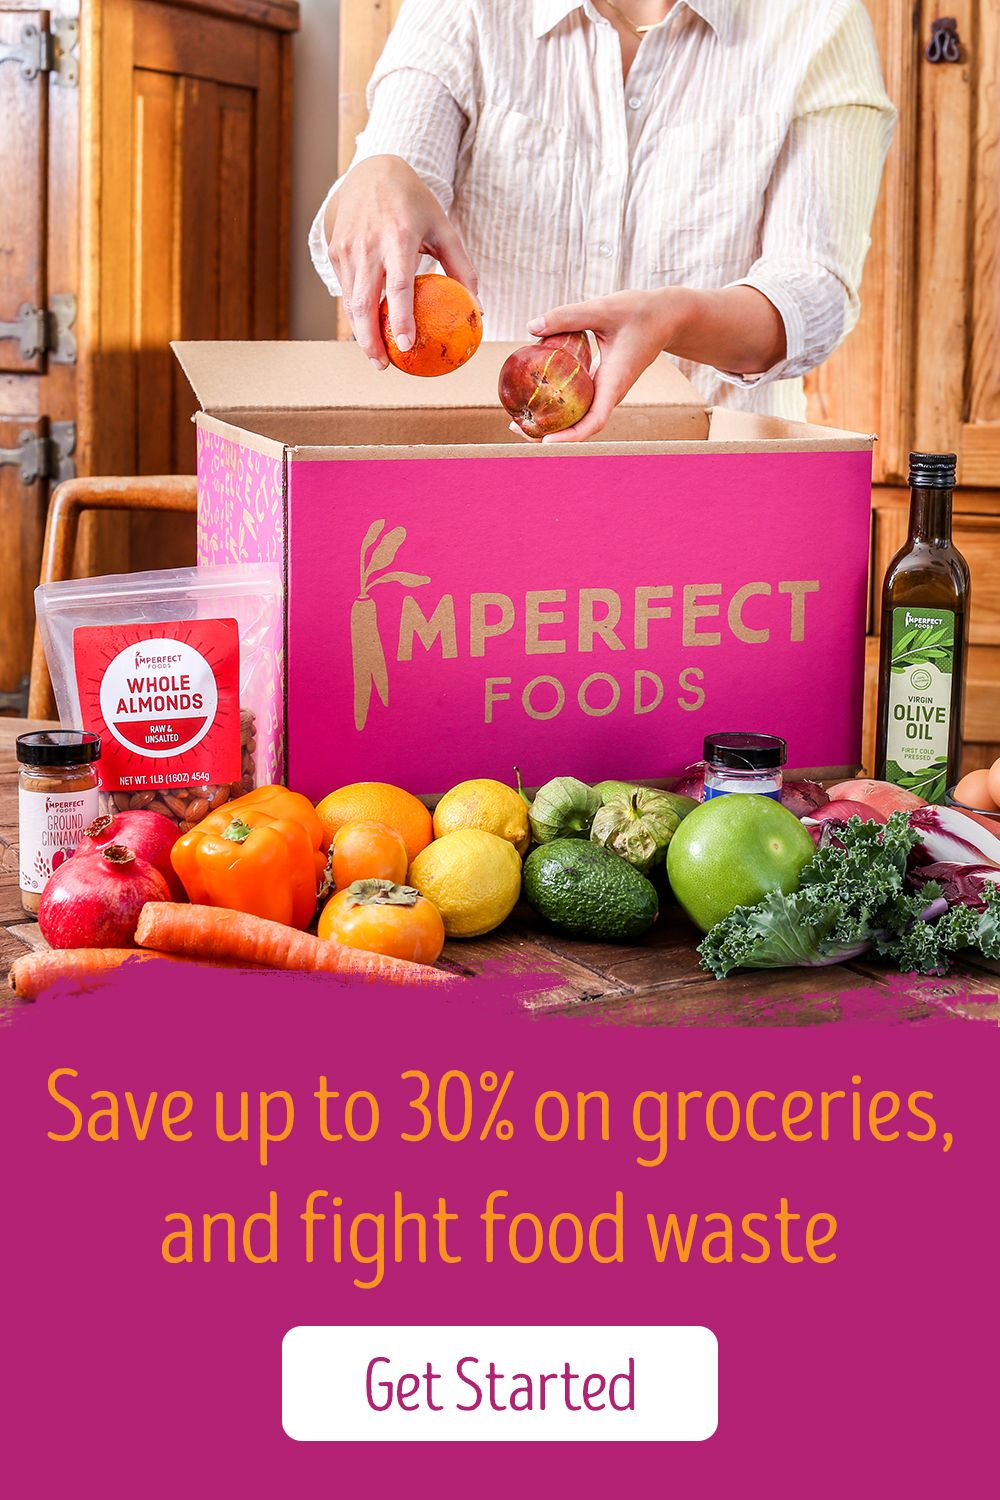 Groceries that fight food waste, up to 30 off. Delivered